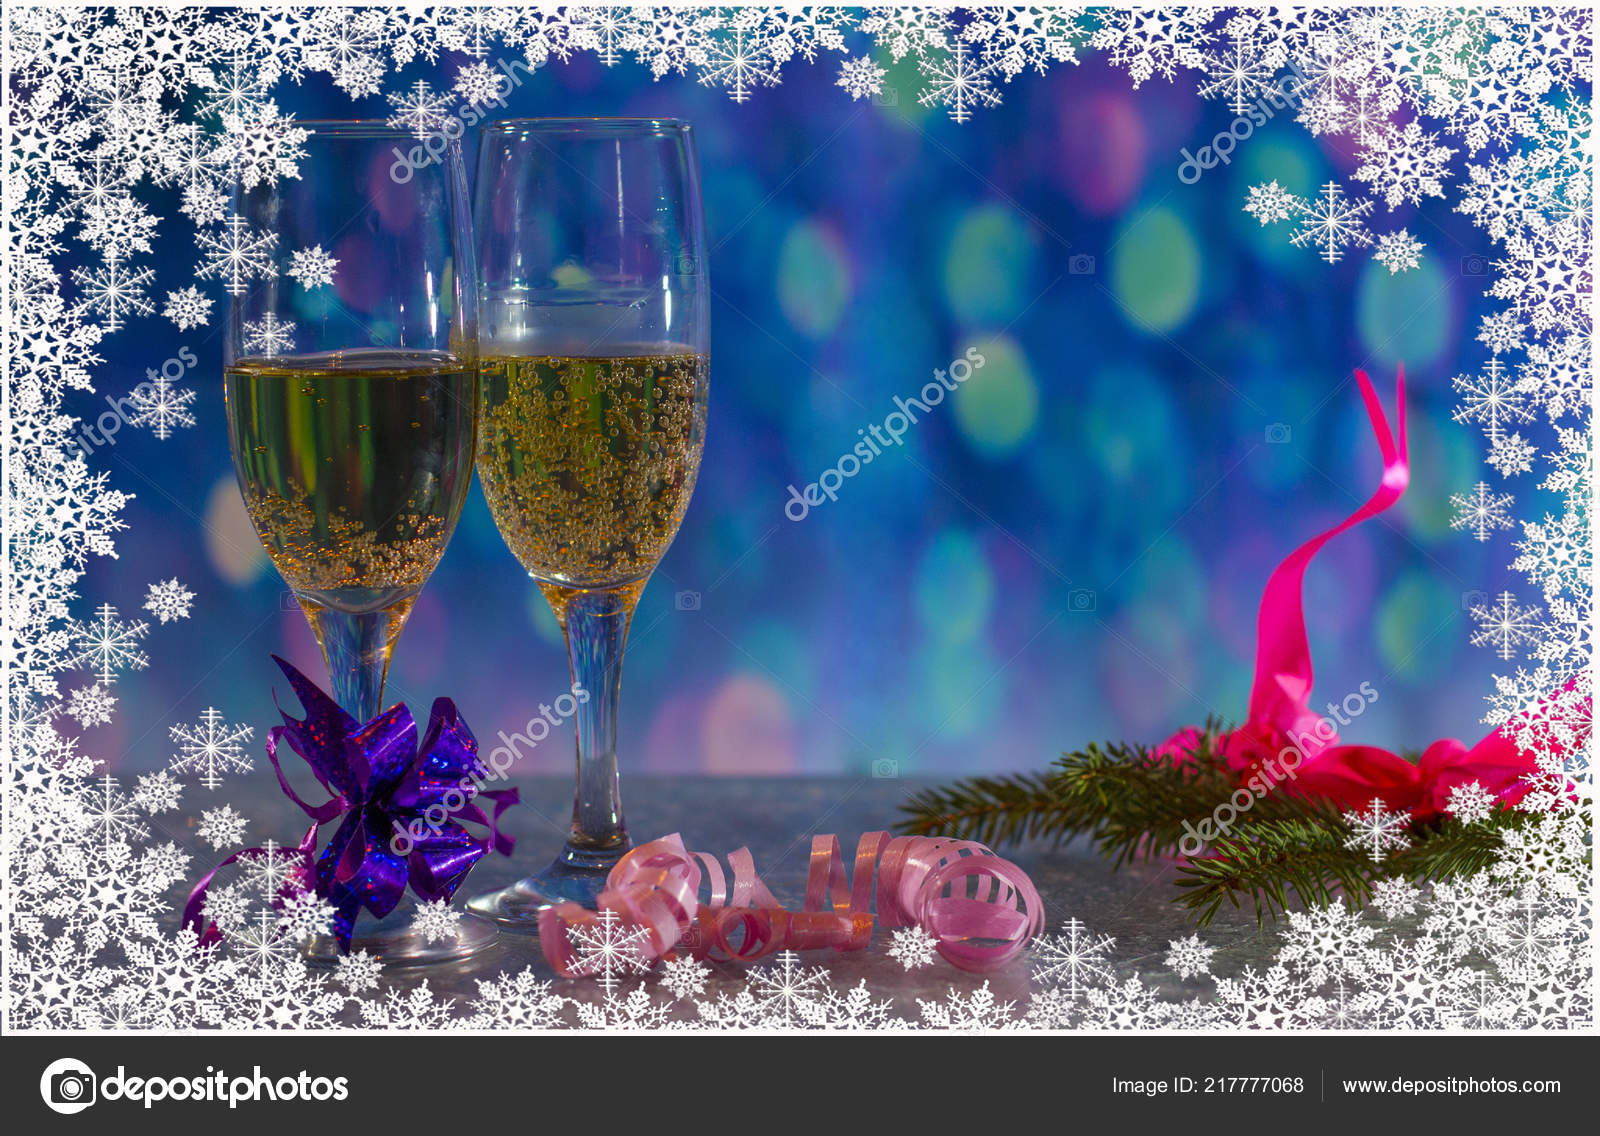 Mail On Christmas Eve 2019.New Year Eve 2019 Christmas Holiday Glass Champagne Stock